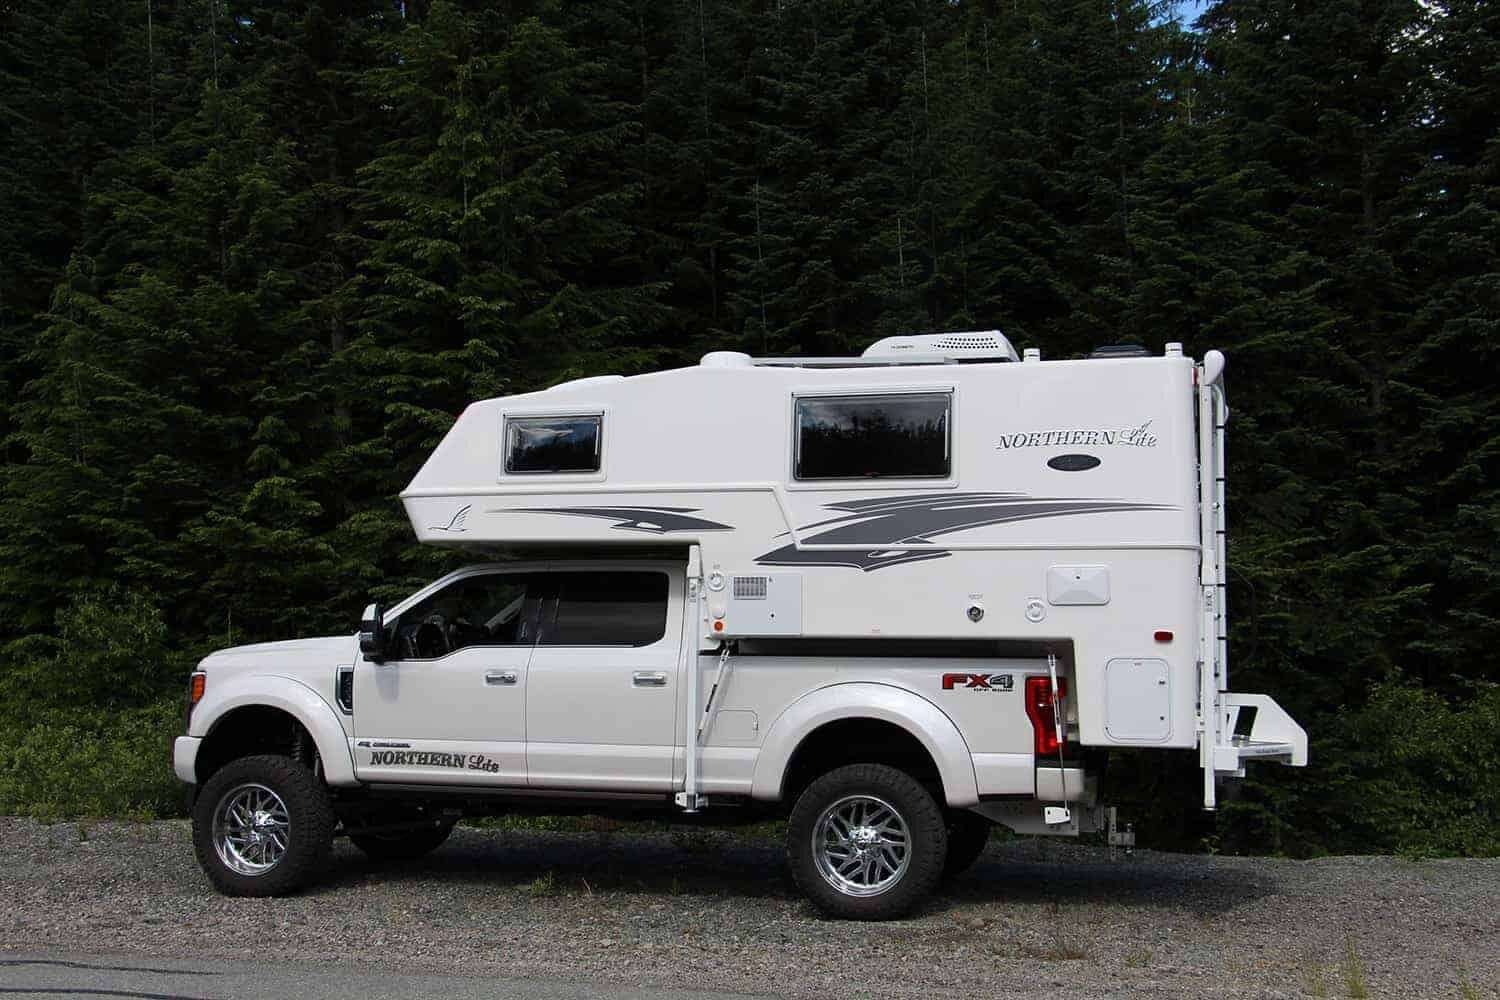 Short Bed Truck Campers Short bed truck camper, Truck